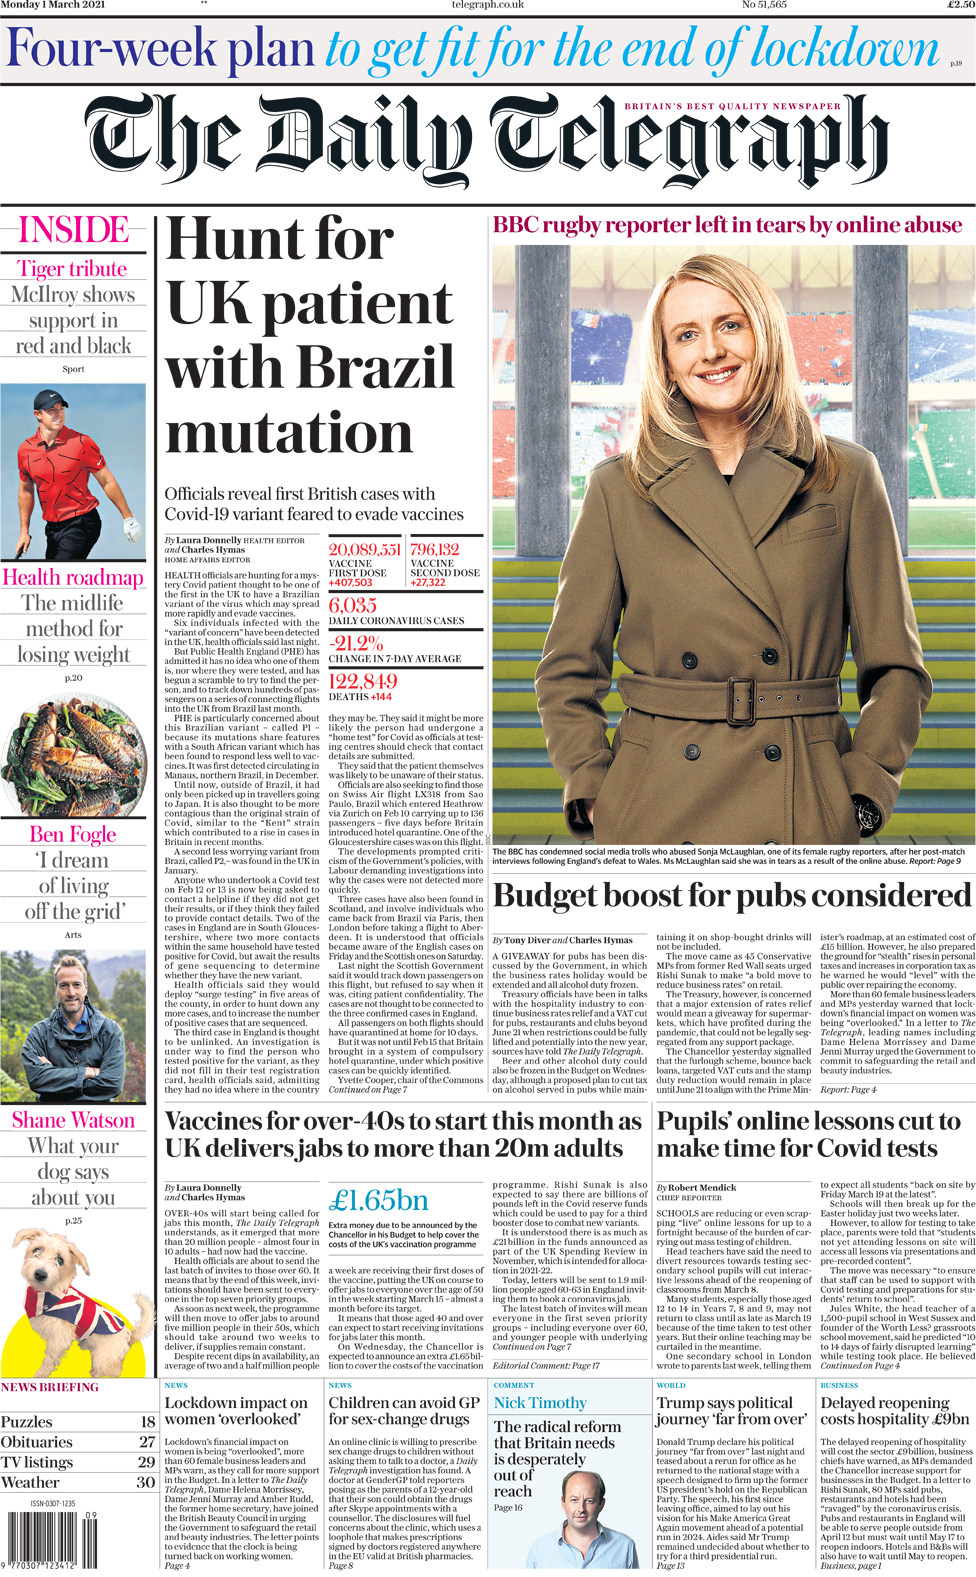 The Daily Telegraph front page 1 March 2021